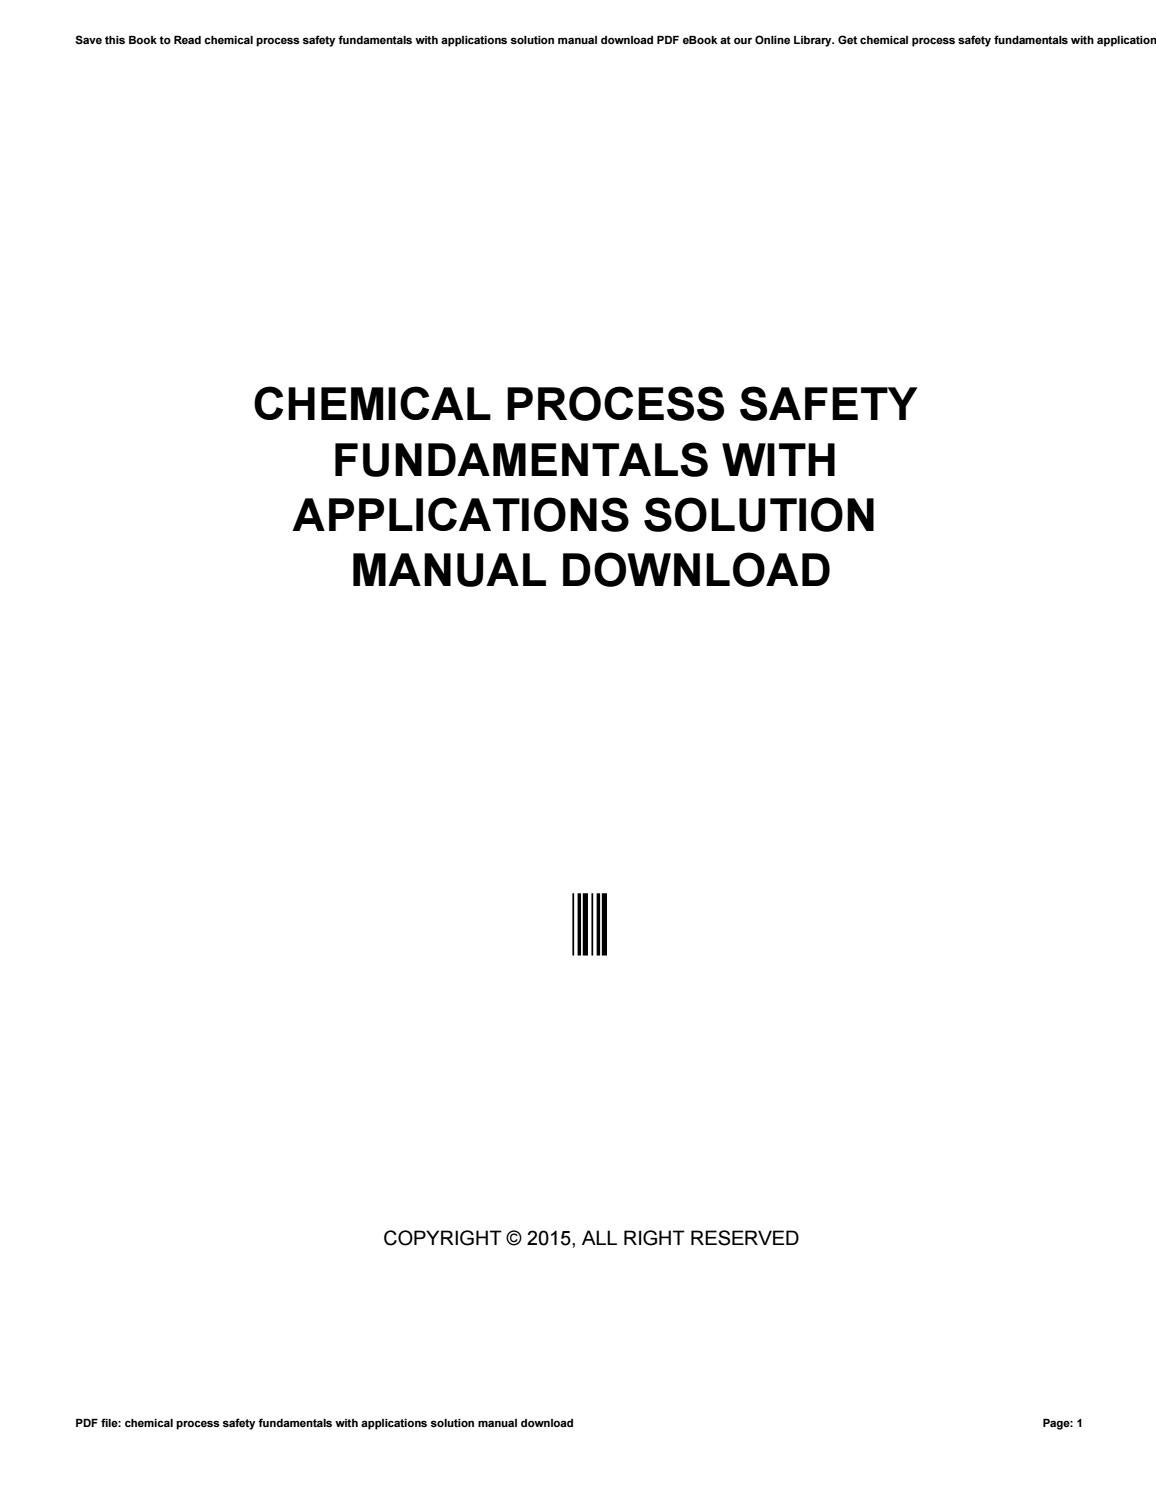 Chemical process safety fundamentals with applications solution manual  download by morriesworld - issuu